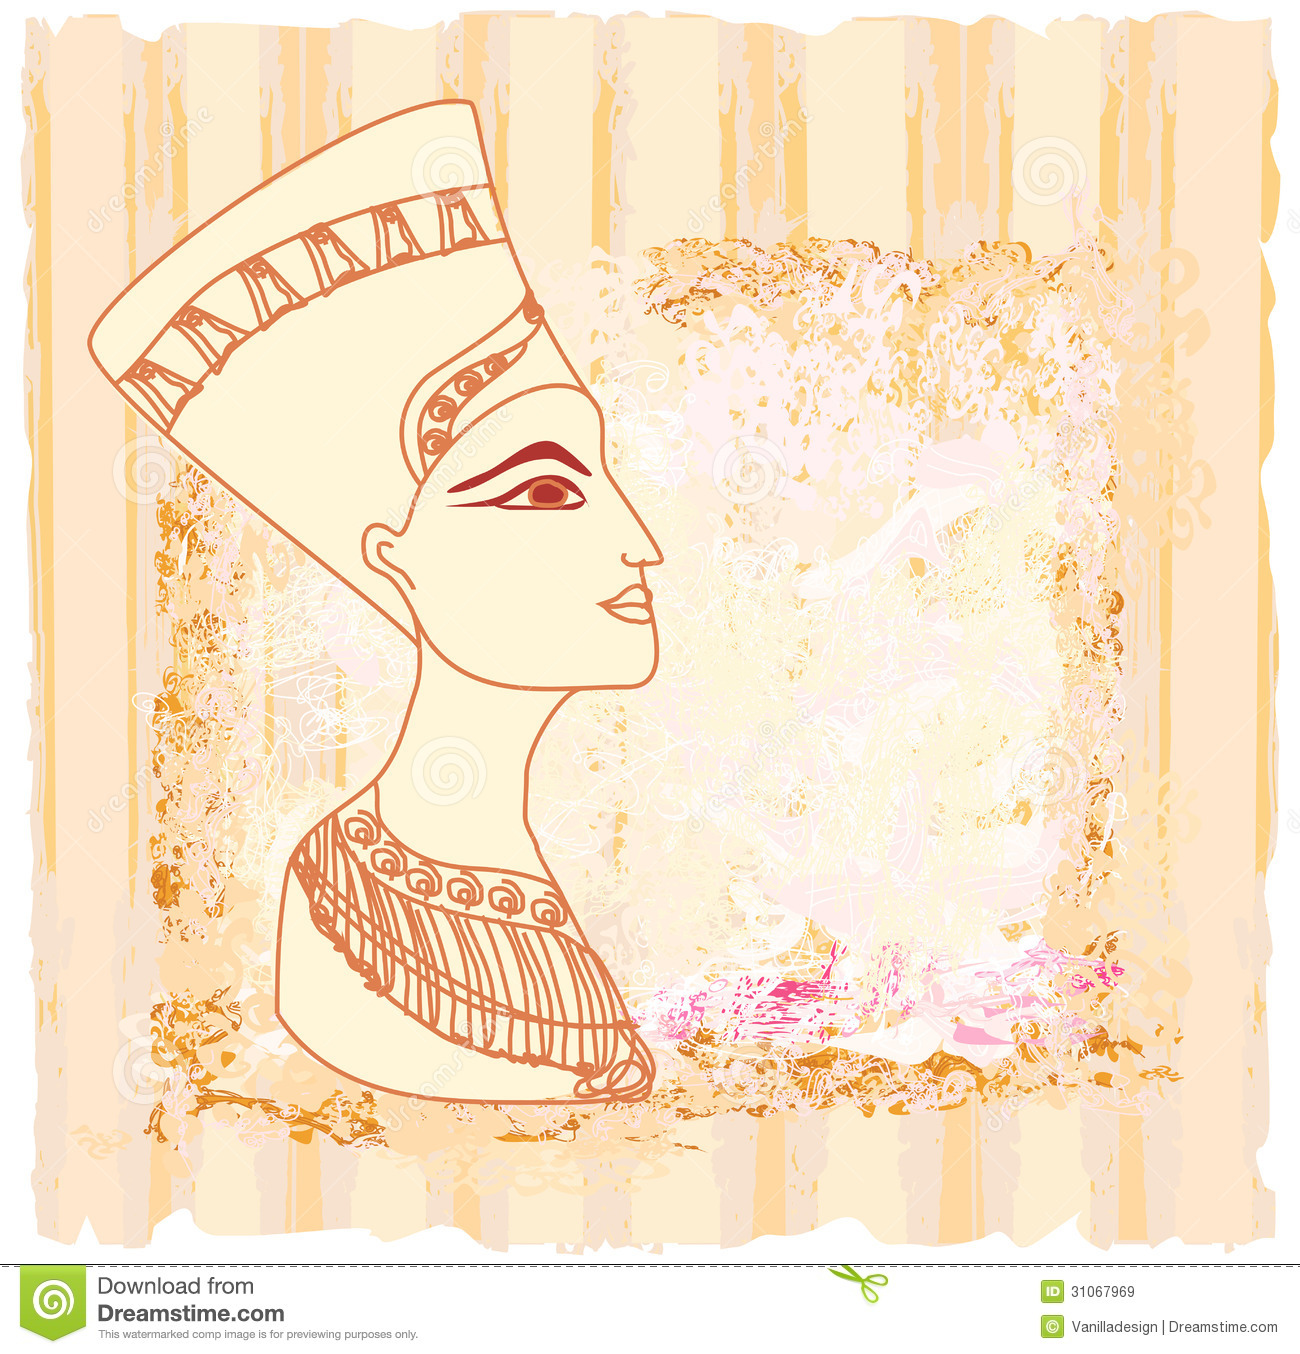 queen cleopatra research paper Queen cleopatra who is cleopatra what did she do that was extraordinary how did she die why was she known as a traitor to certain people cleopatra is.